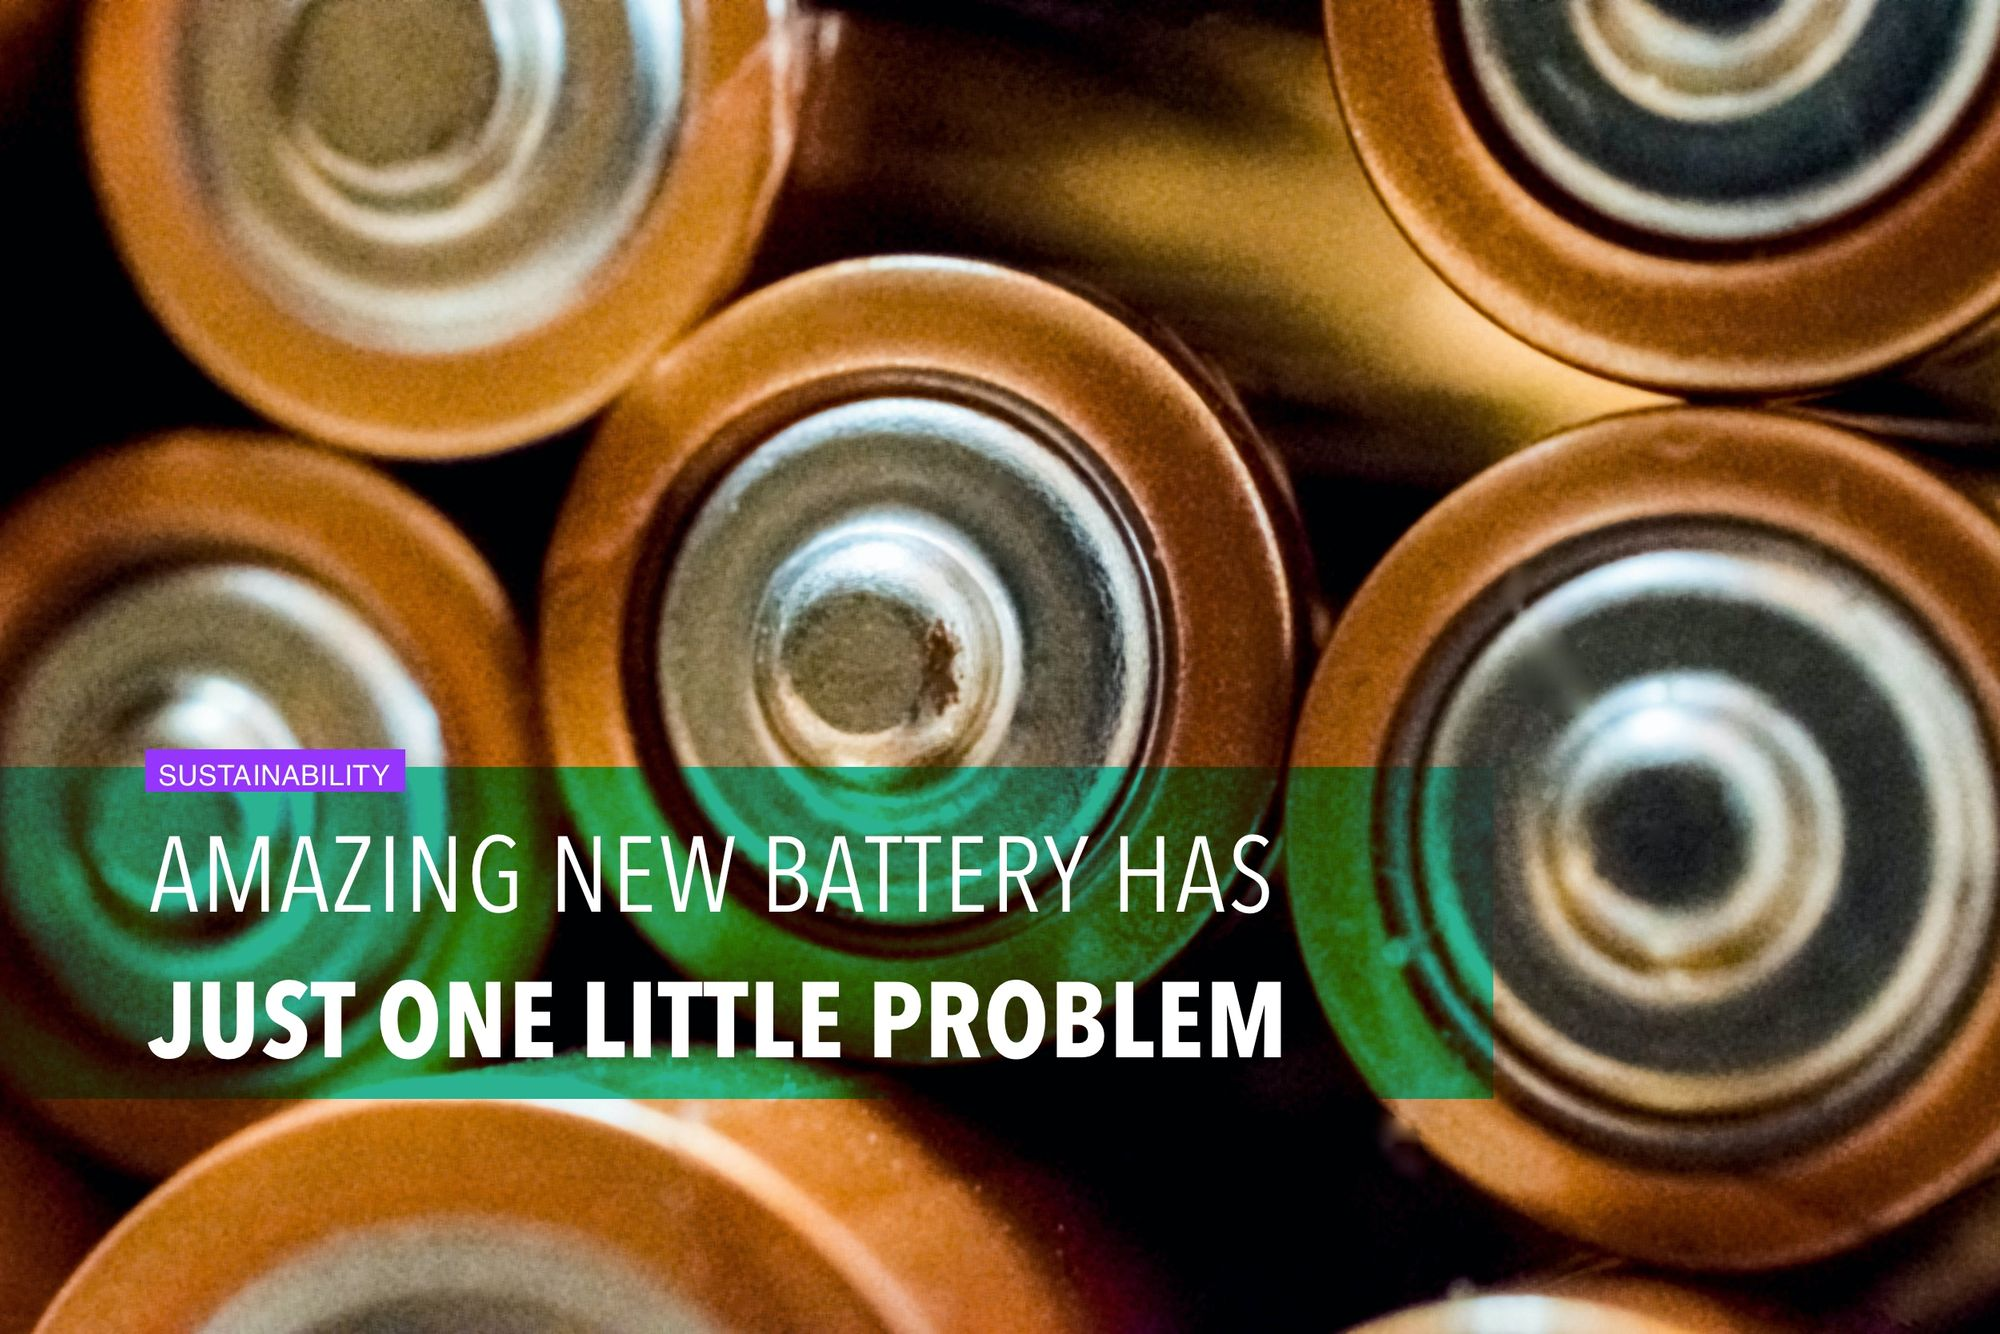 Amazing new battery has just one little problem